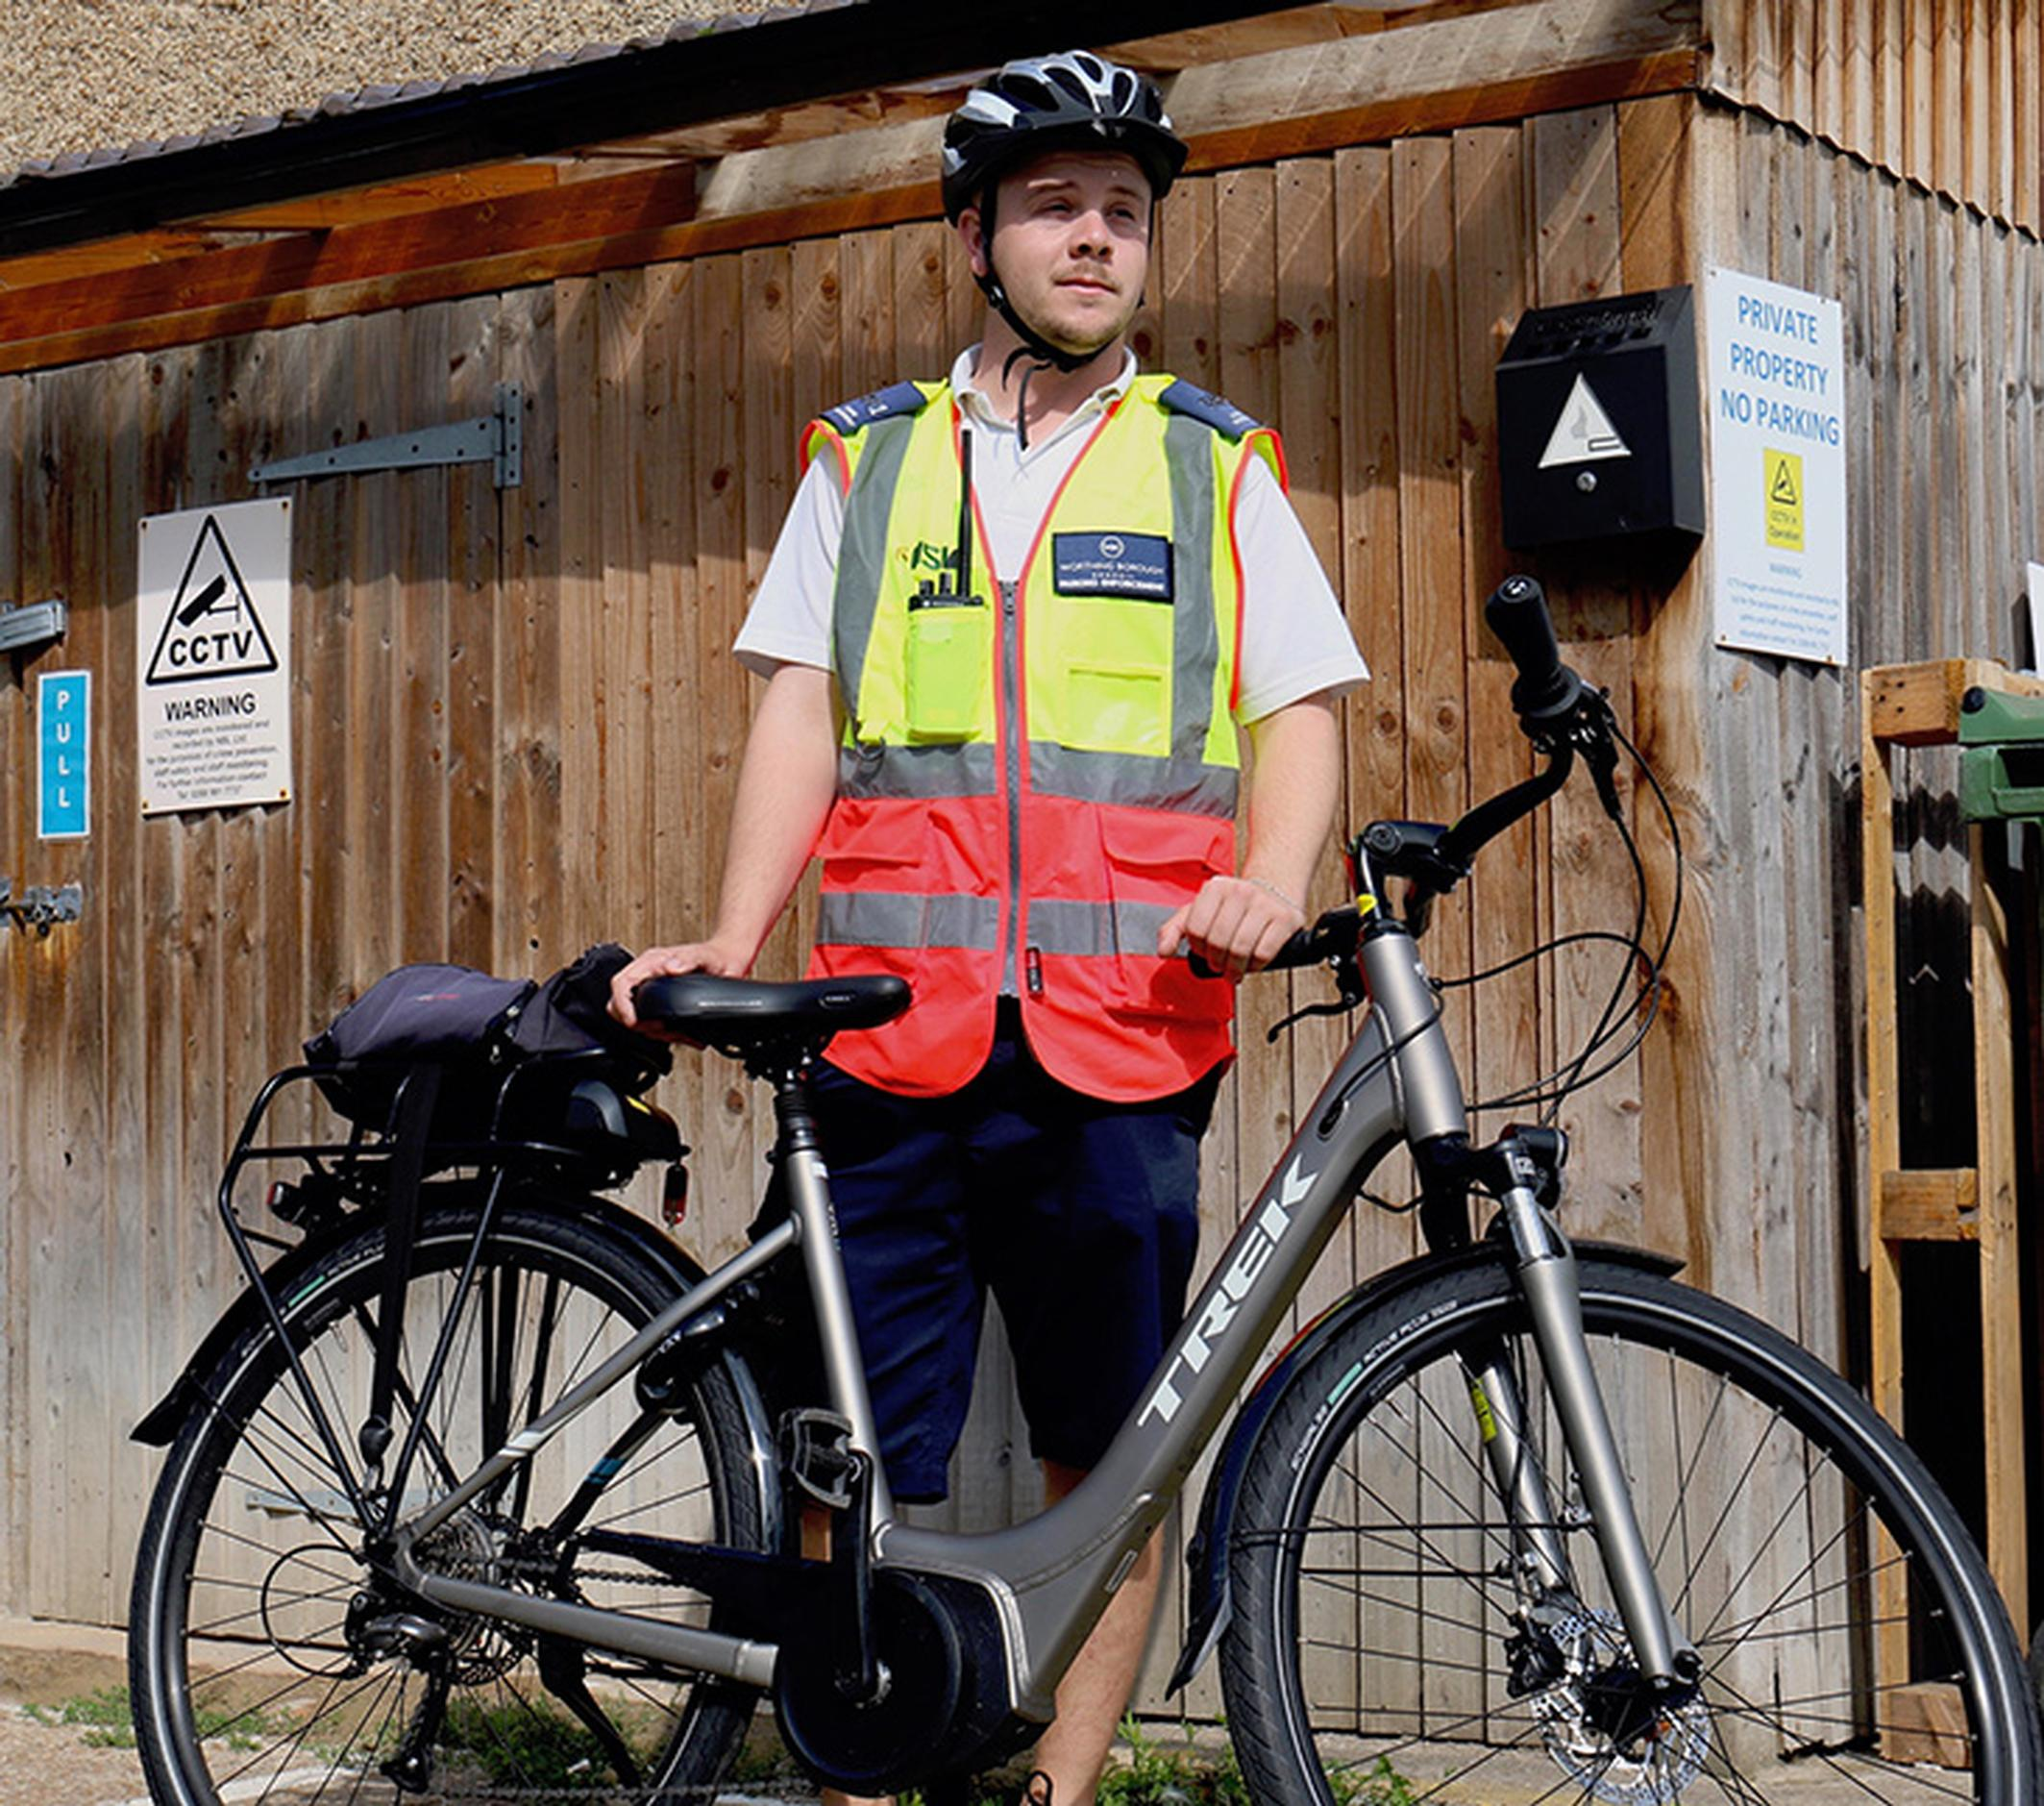 An NSL civil enforcement officer on an e-bike